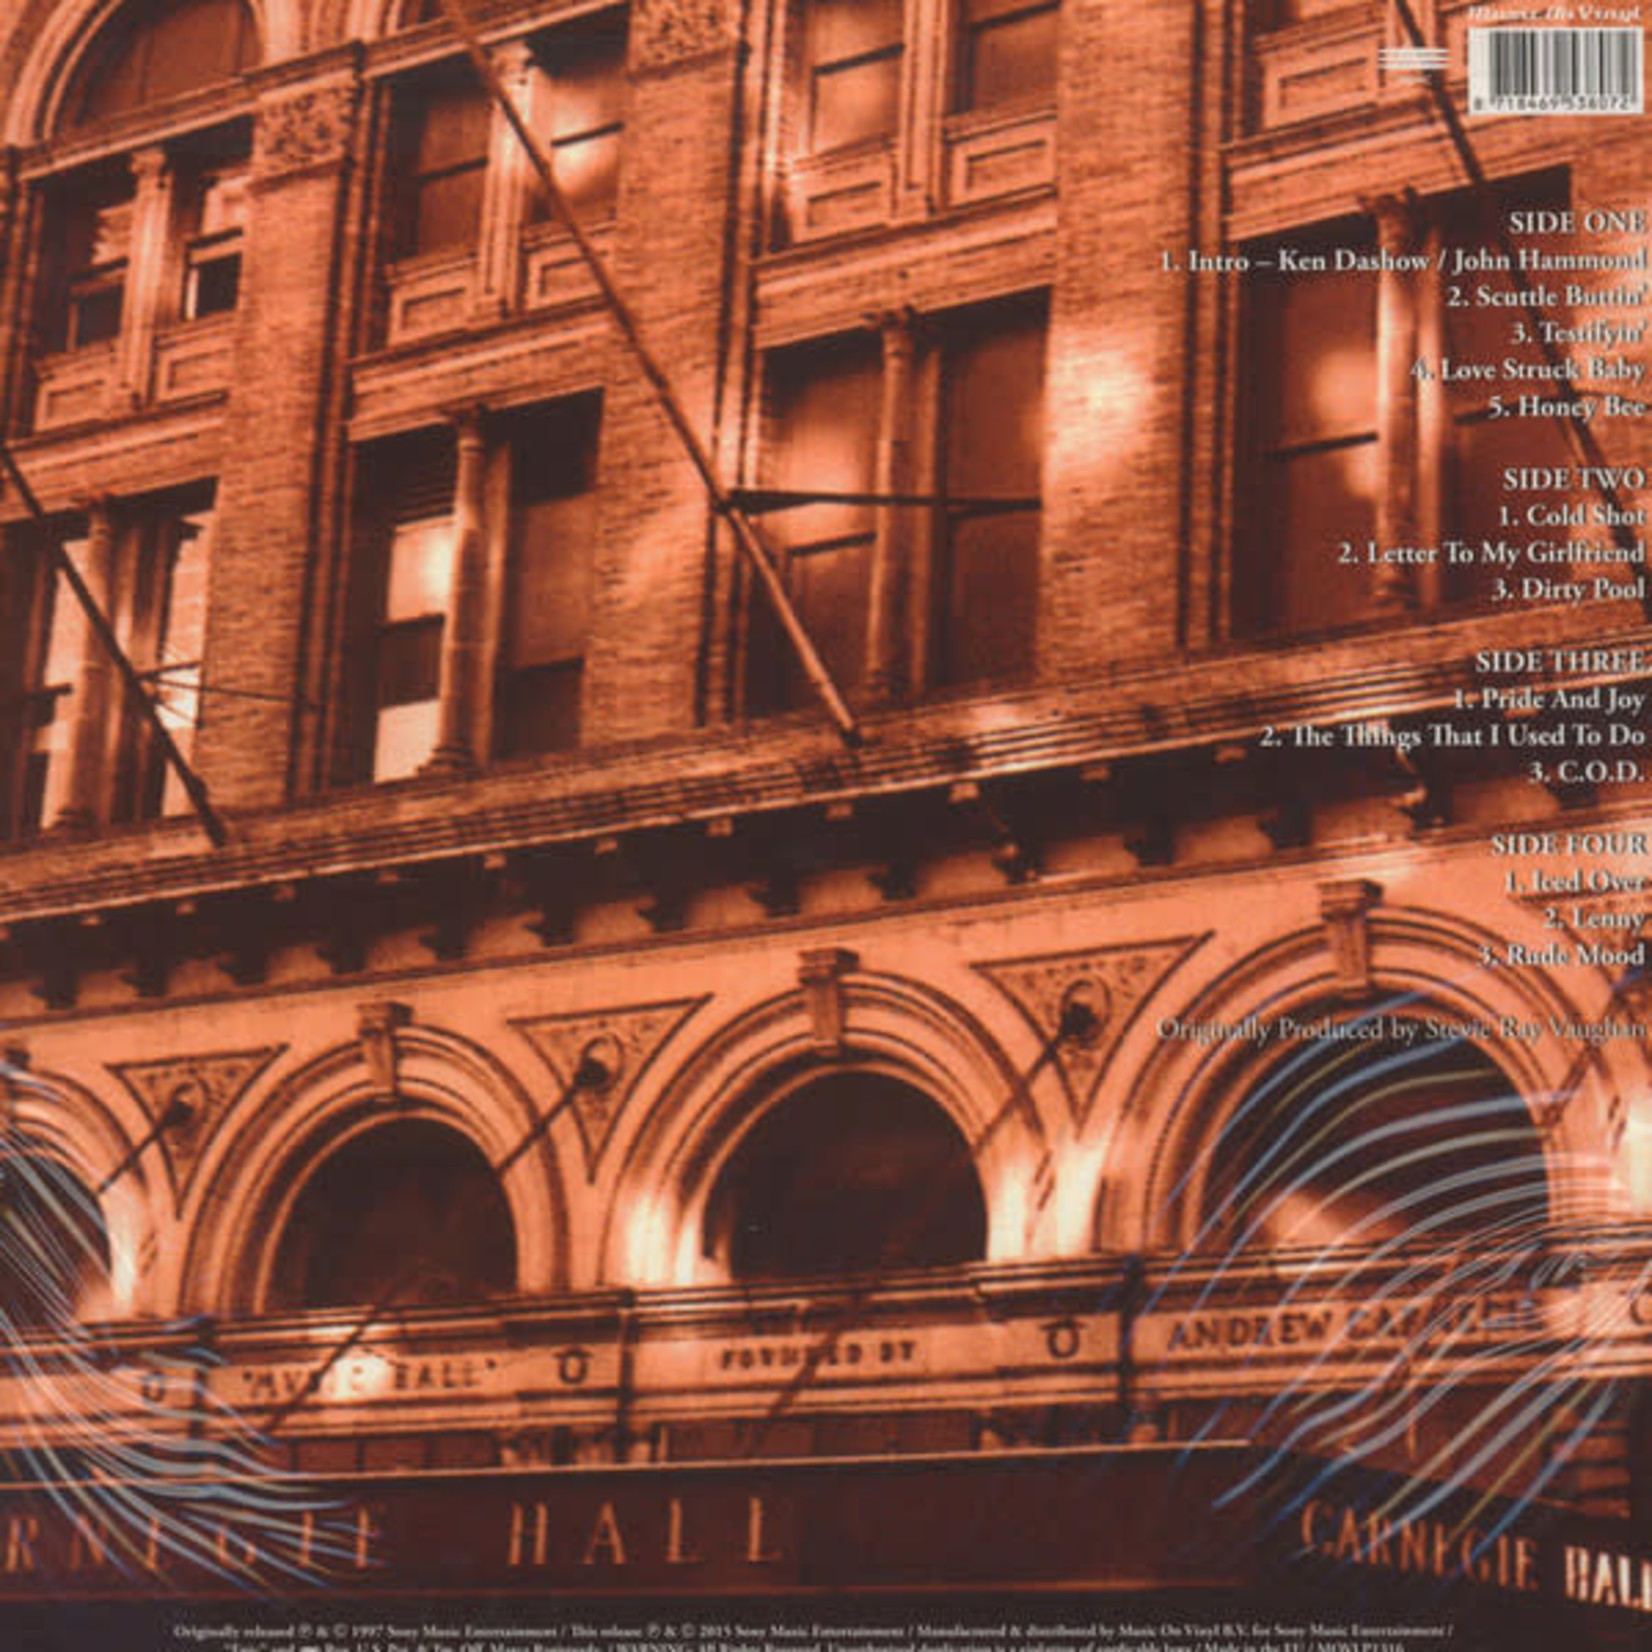 STEVIE RAY VAUGHAN LIVE AT CARNEGIE HALL (2LP)